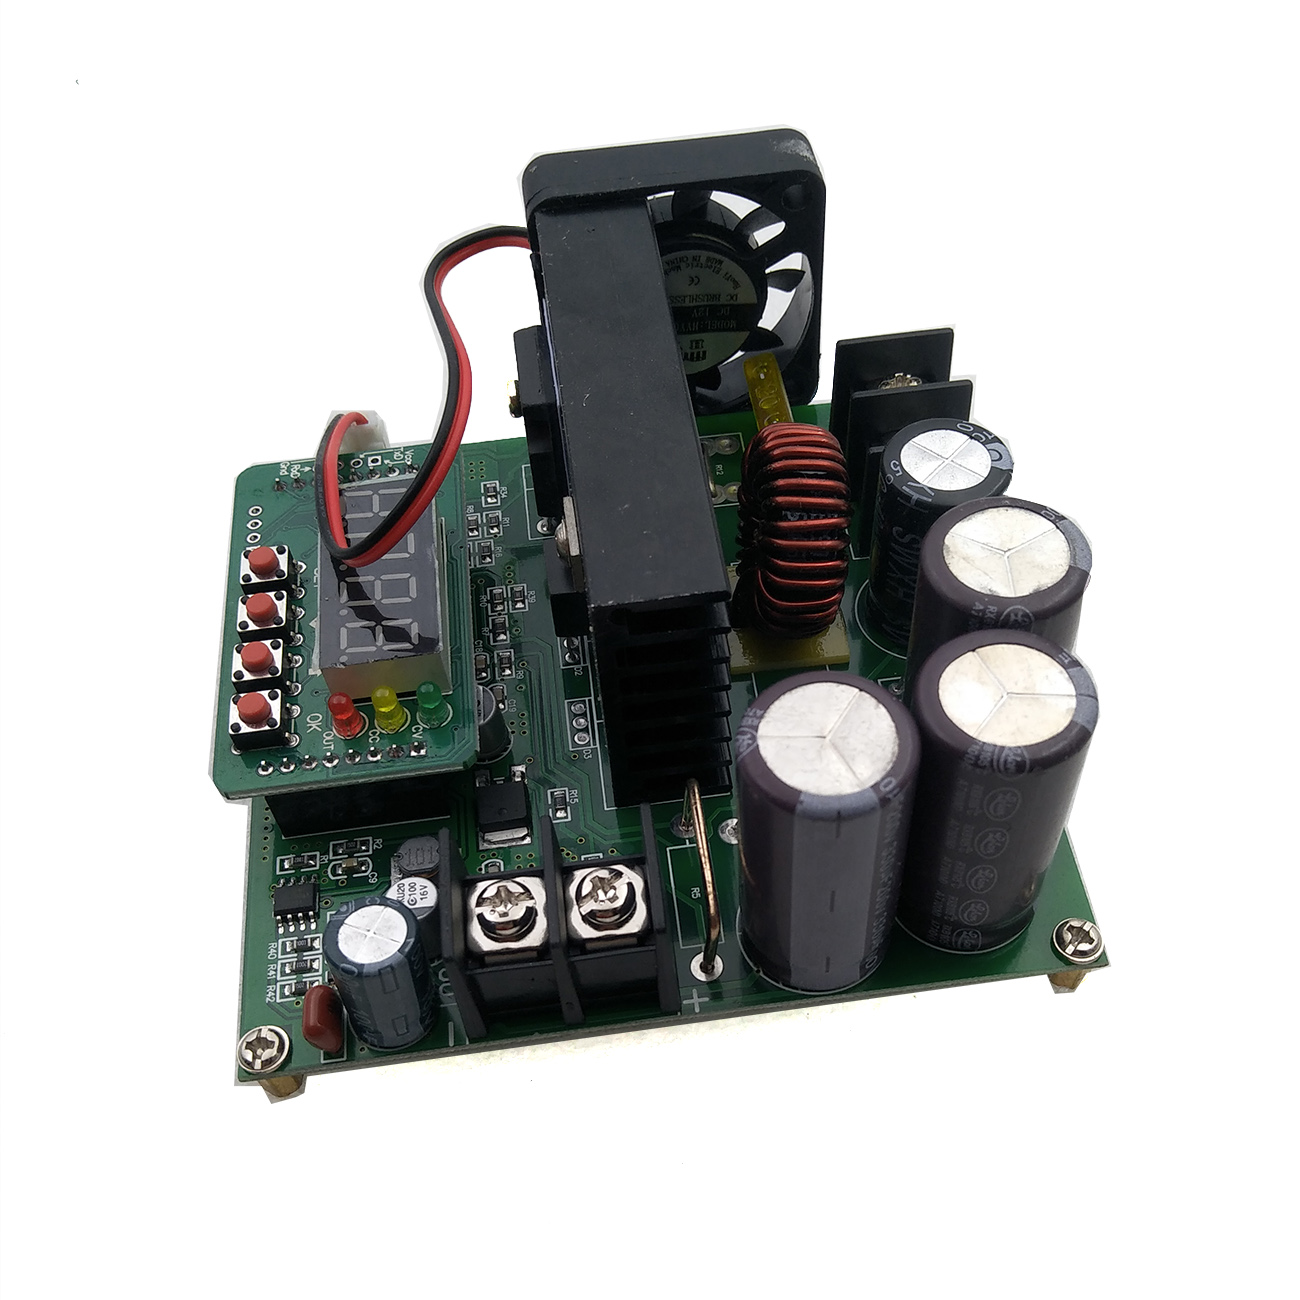 Image 2 - 5pcs/lot B900W adjustable impulse module Current Transformer Voltage Regulator Module Input Constant 8 60v to 10 120v 900w-in Integrated Circuits from Electronic Components & Supplies